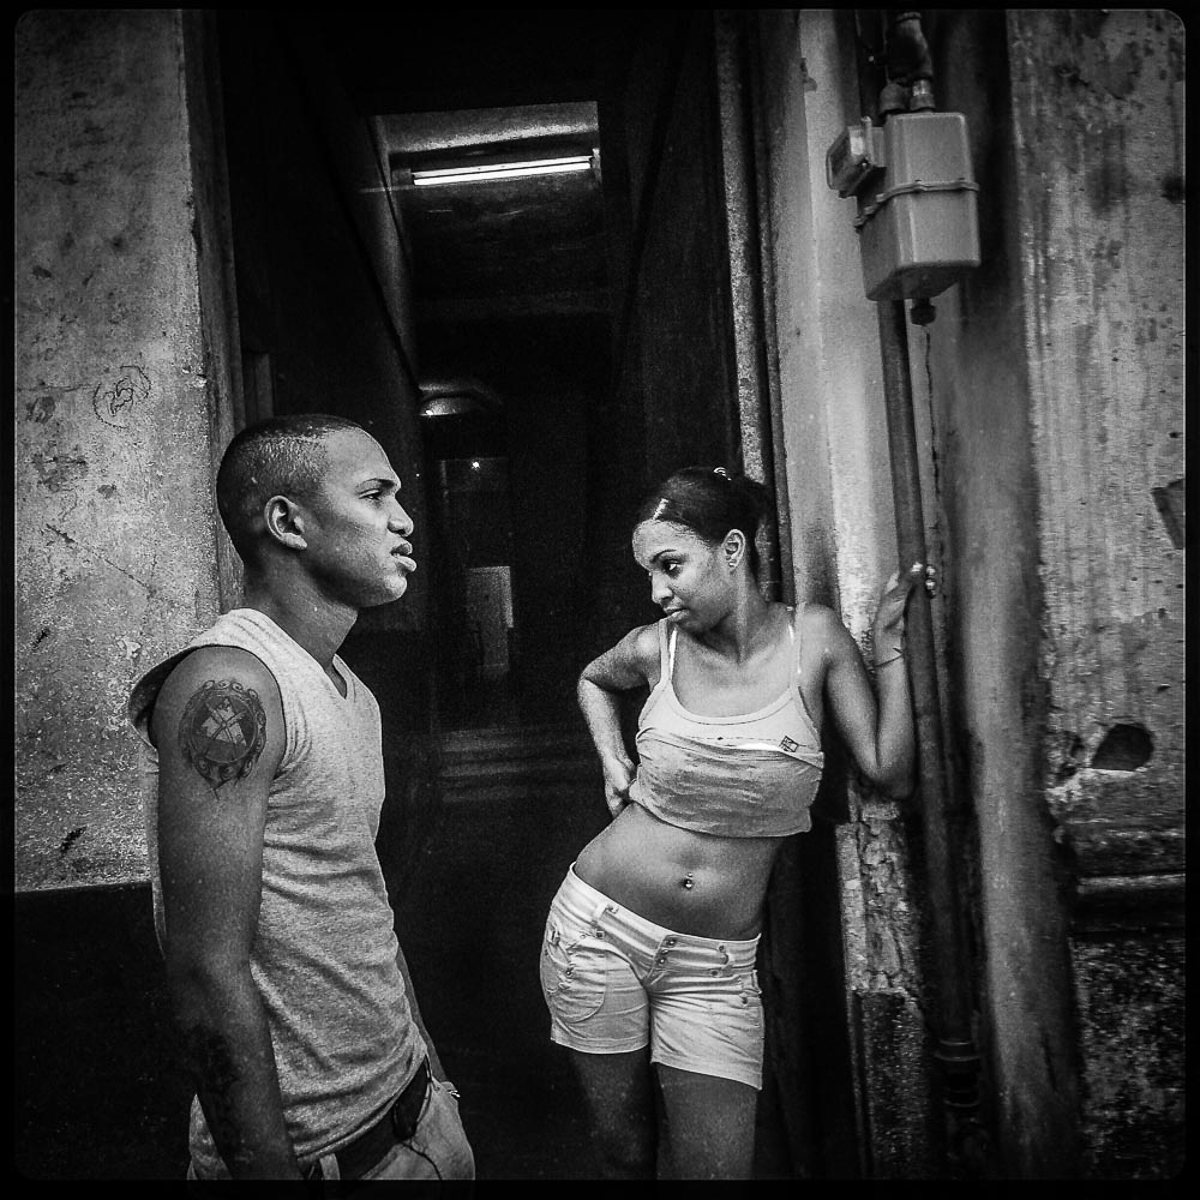 Couple in Doorway, Havana Cuba 2014